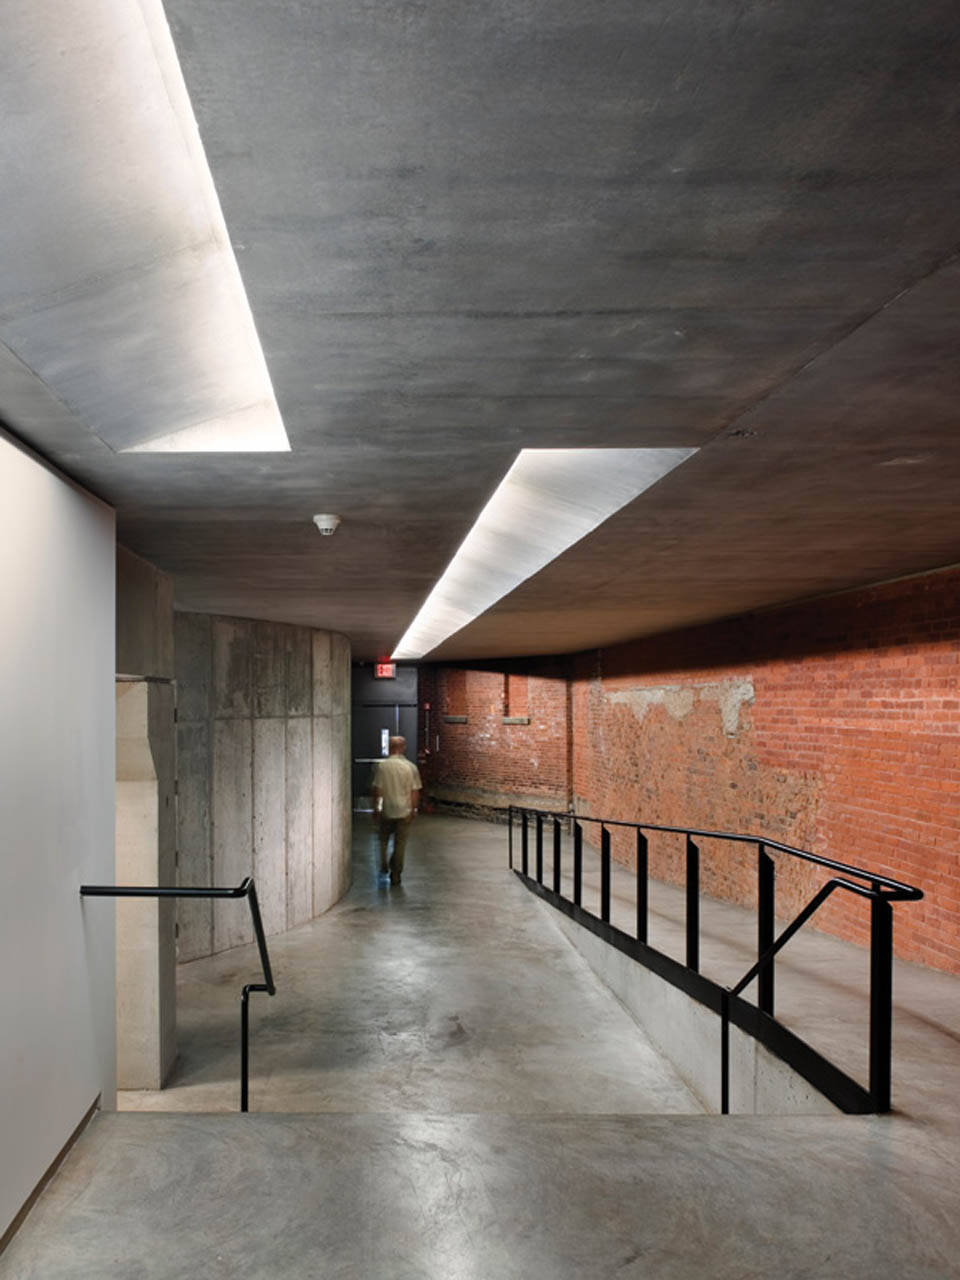 Pratt Institute Architecture and Design